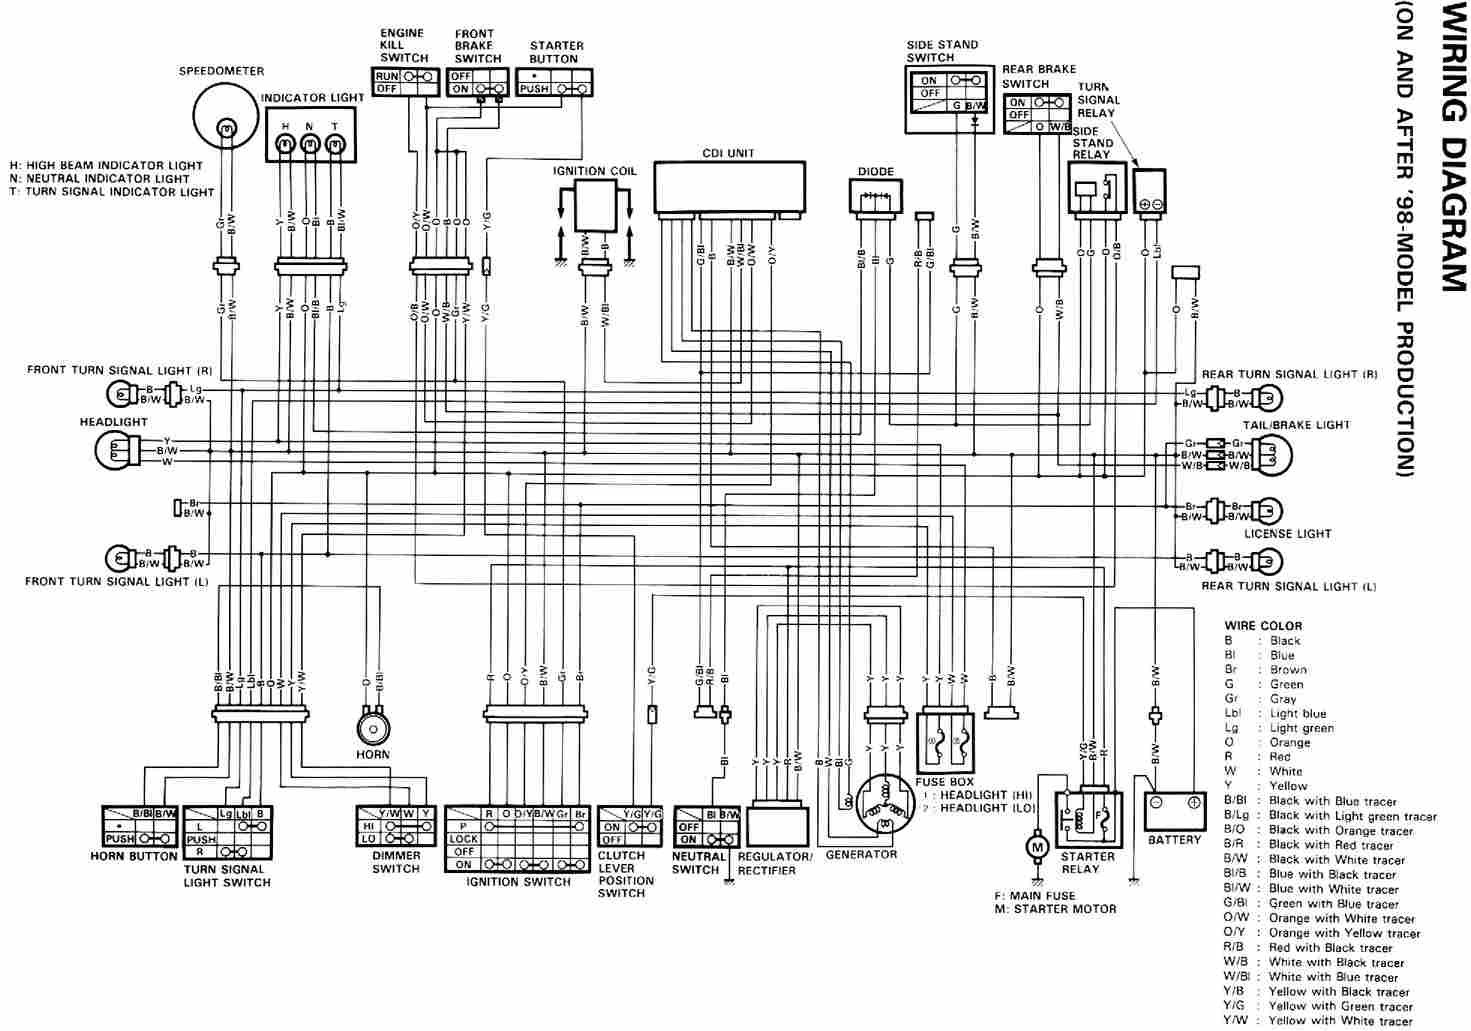 Fascinating nighthawk 250 wiring diagram images best image wire extraordinary 1983 honda nighthawk 550 wiring diagram contemporary pooptronica Gallery